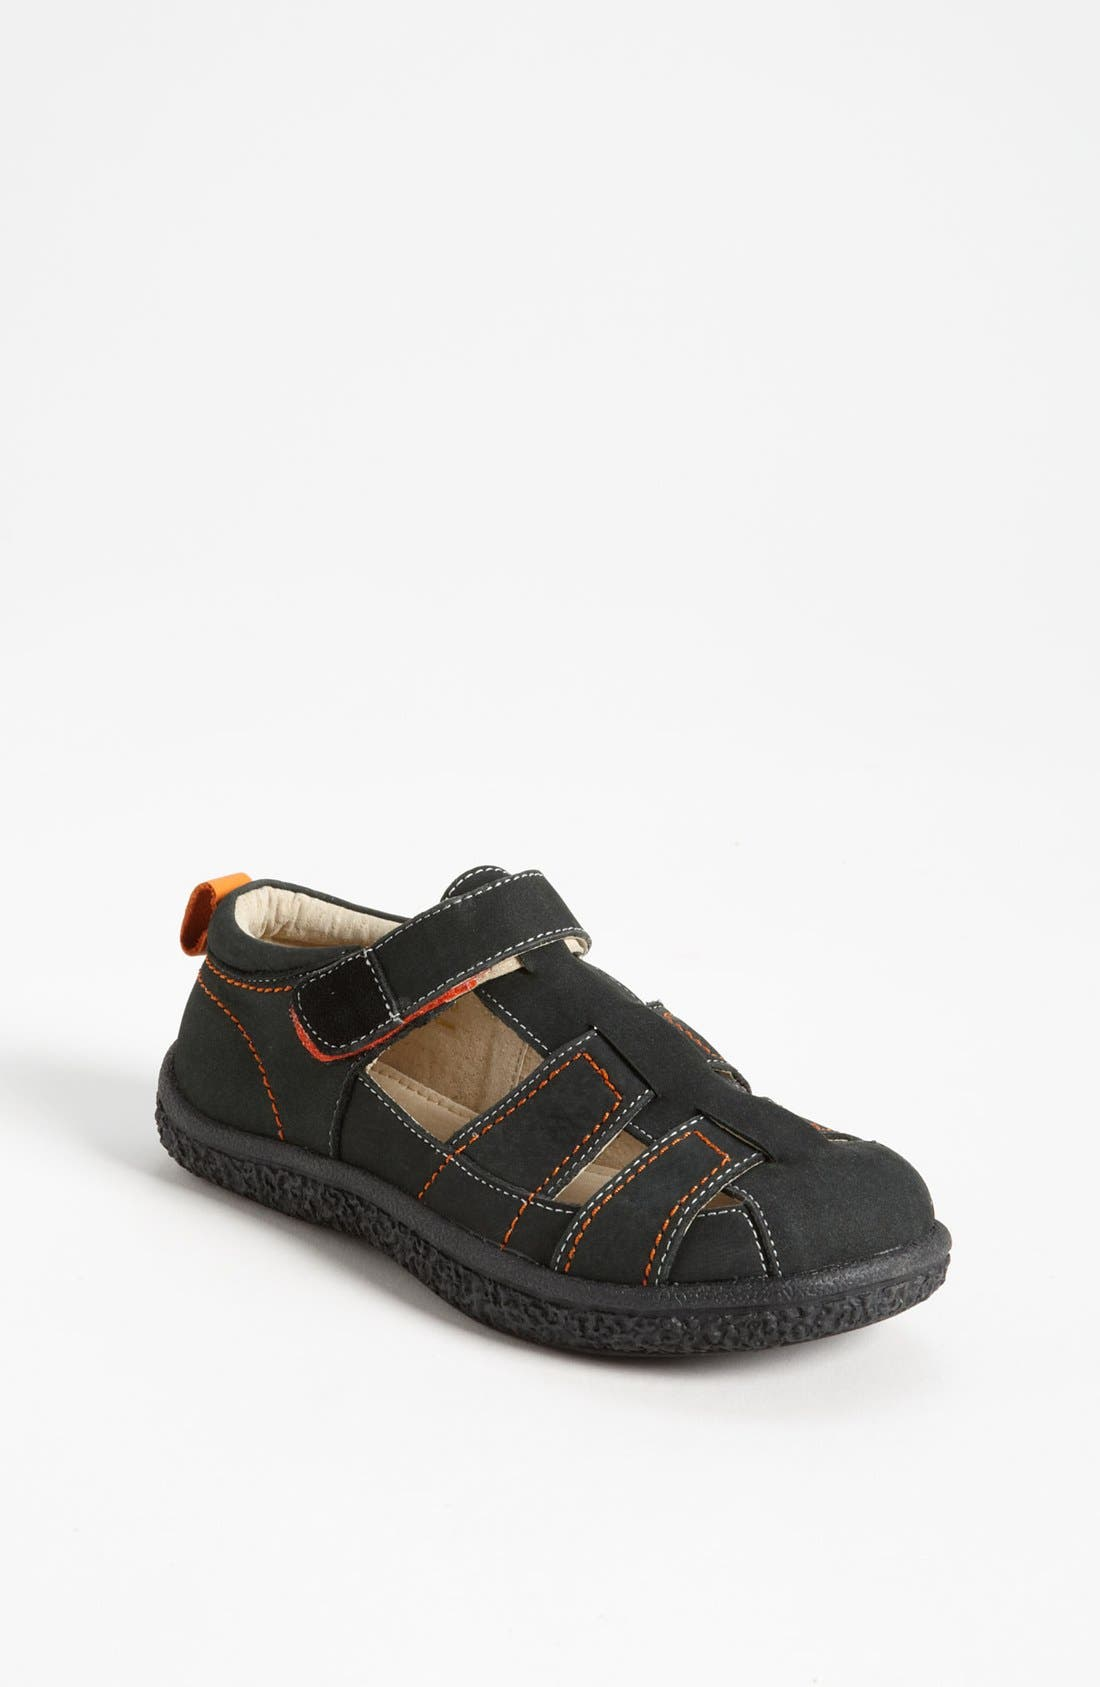 Alternate Image 1 Selected - See Kai Run 'Christopher' Sandal (Toddler & Little Kid)